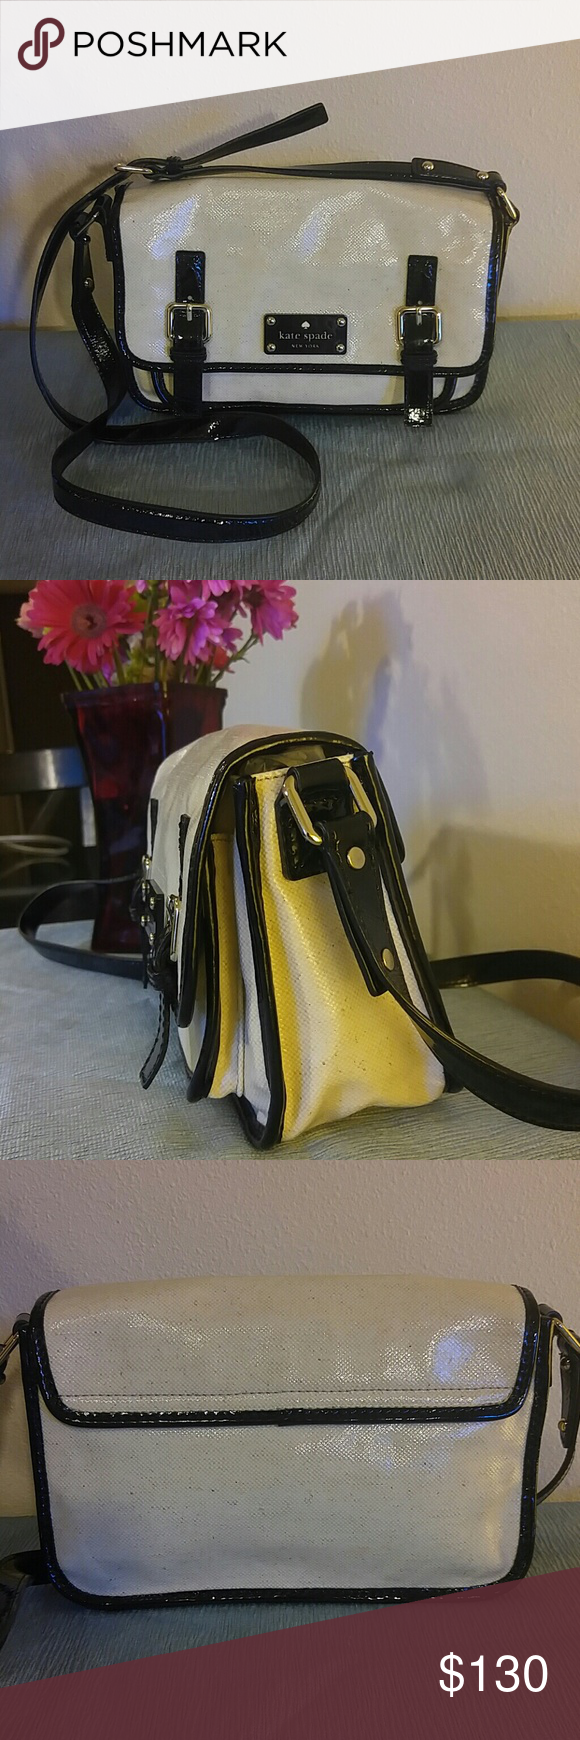 "New Kate Spade coated canvas and patent leather ba 11""x8""x4"" water proof/snow proof new coated canvas and black patent leather crossbody bag with gold detailing and magnetic closure, perfect inside and out. kate spade Bags Crossbody Bags"